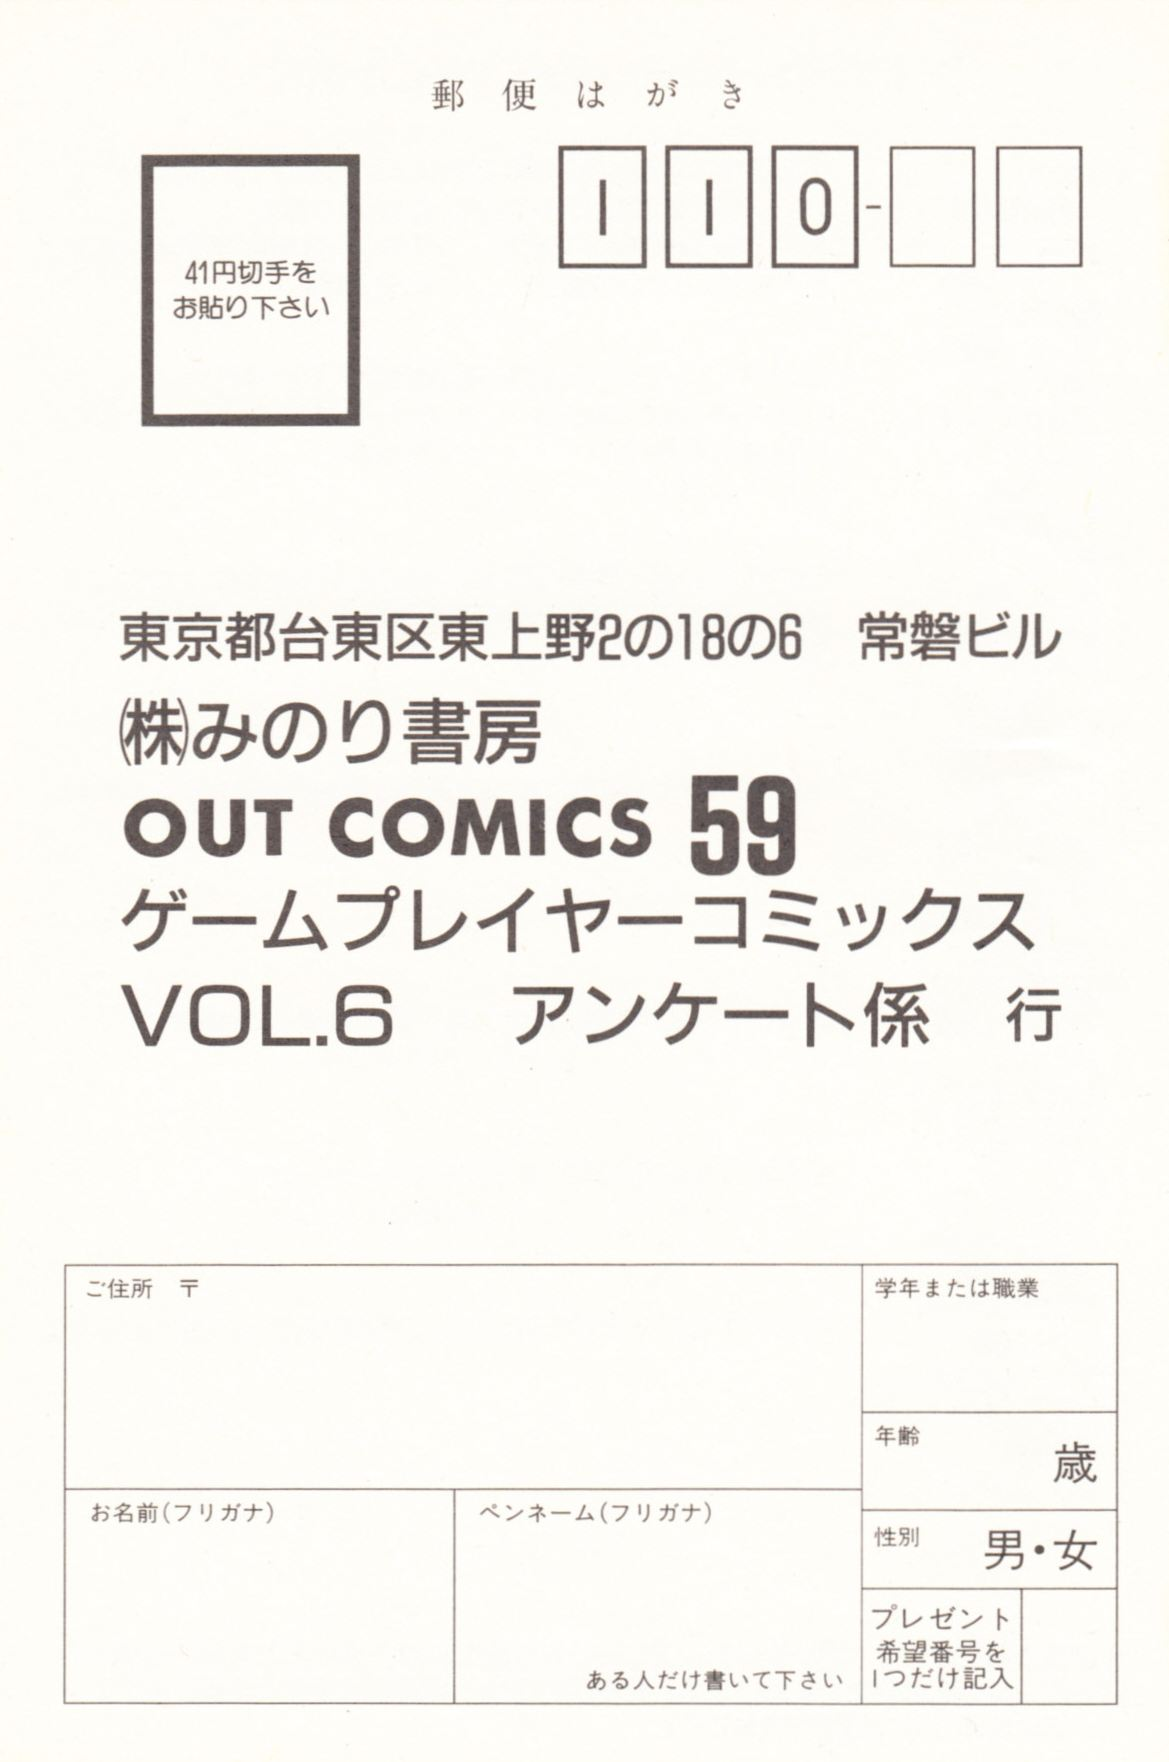 Comic - Game Player Comics Volume 6 - JP - Registration Card - Front - Scan